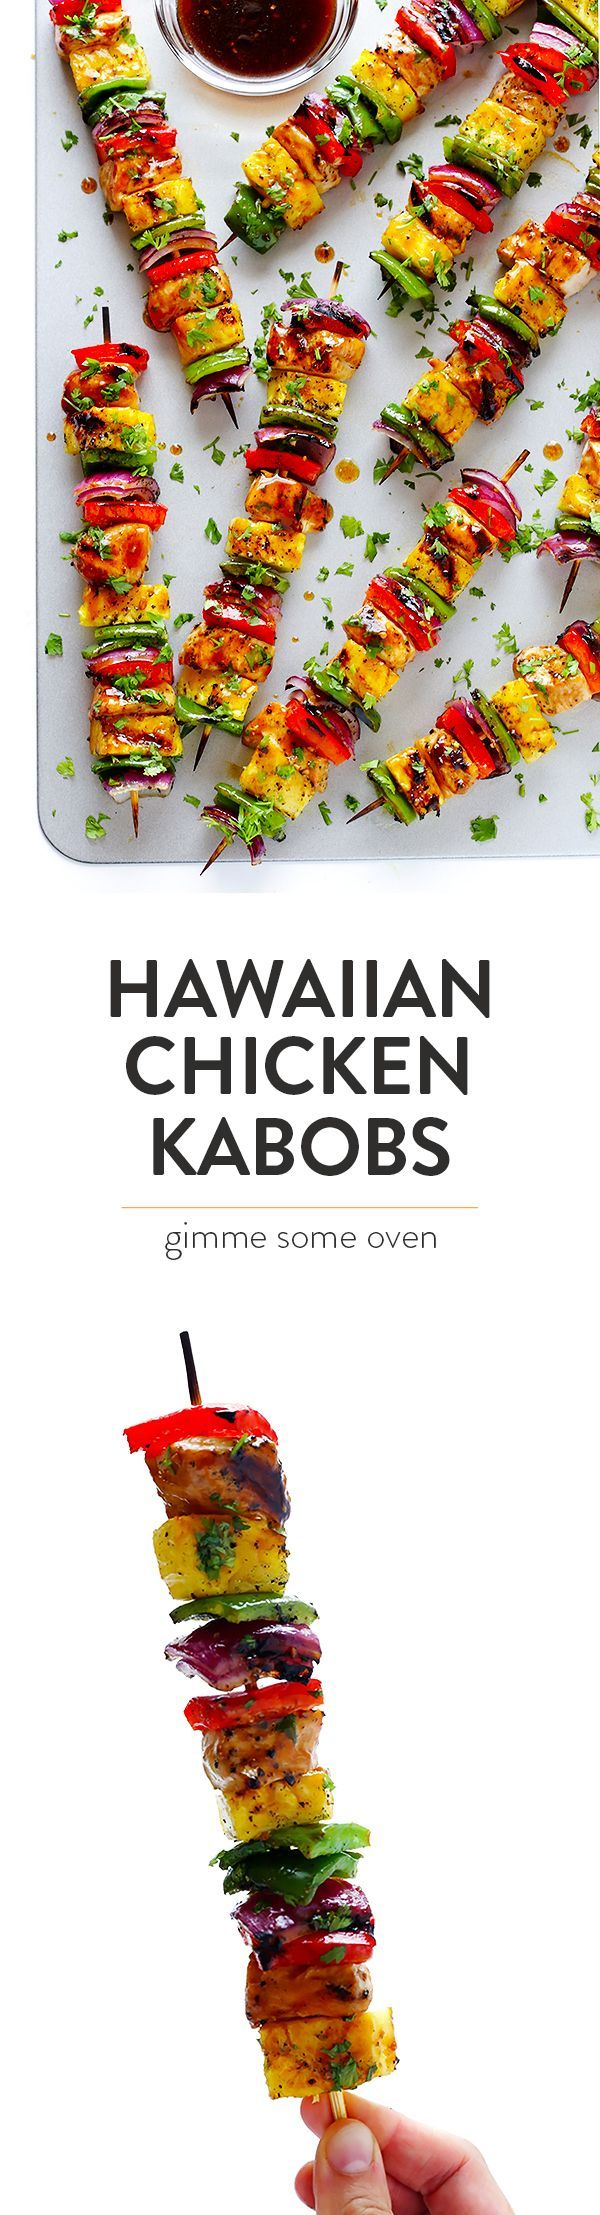 These Rainbow Hawaiian Chicken Kabobs are marinated and basted in a tasty teriyaki sauce, then grilled to perfection and sprinkled with cilantro. So delicious! | http://gimmesomeoven.com